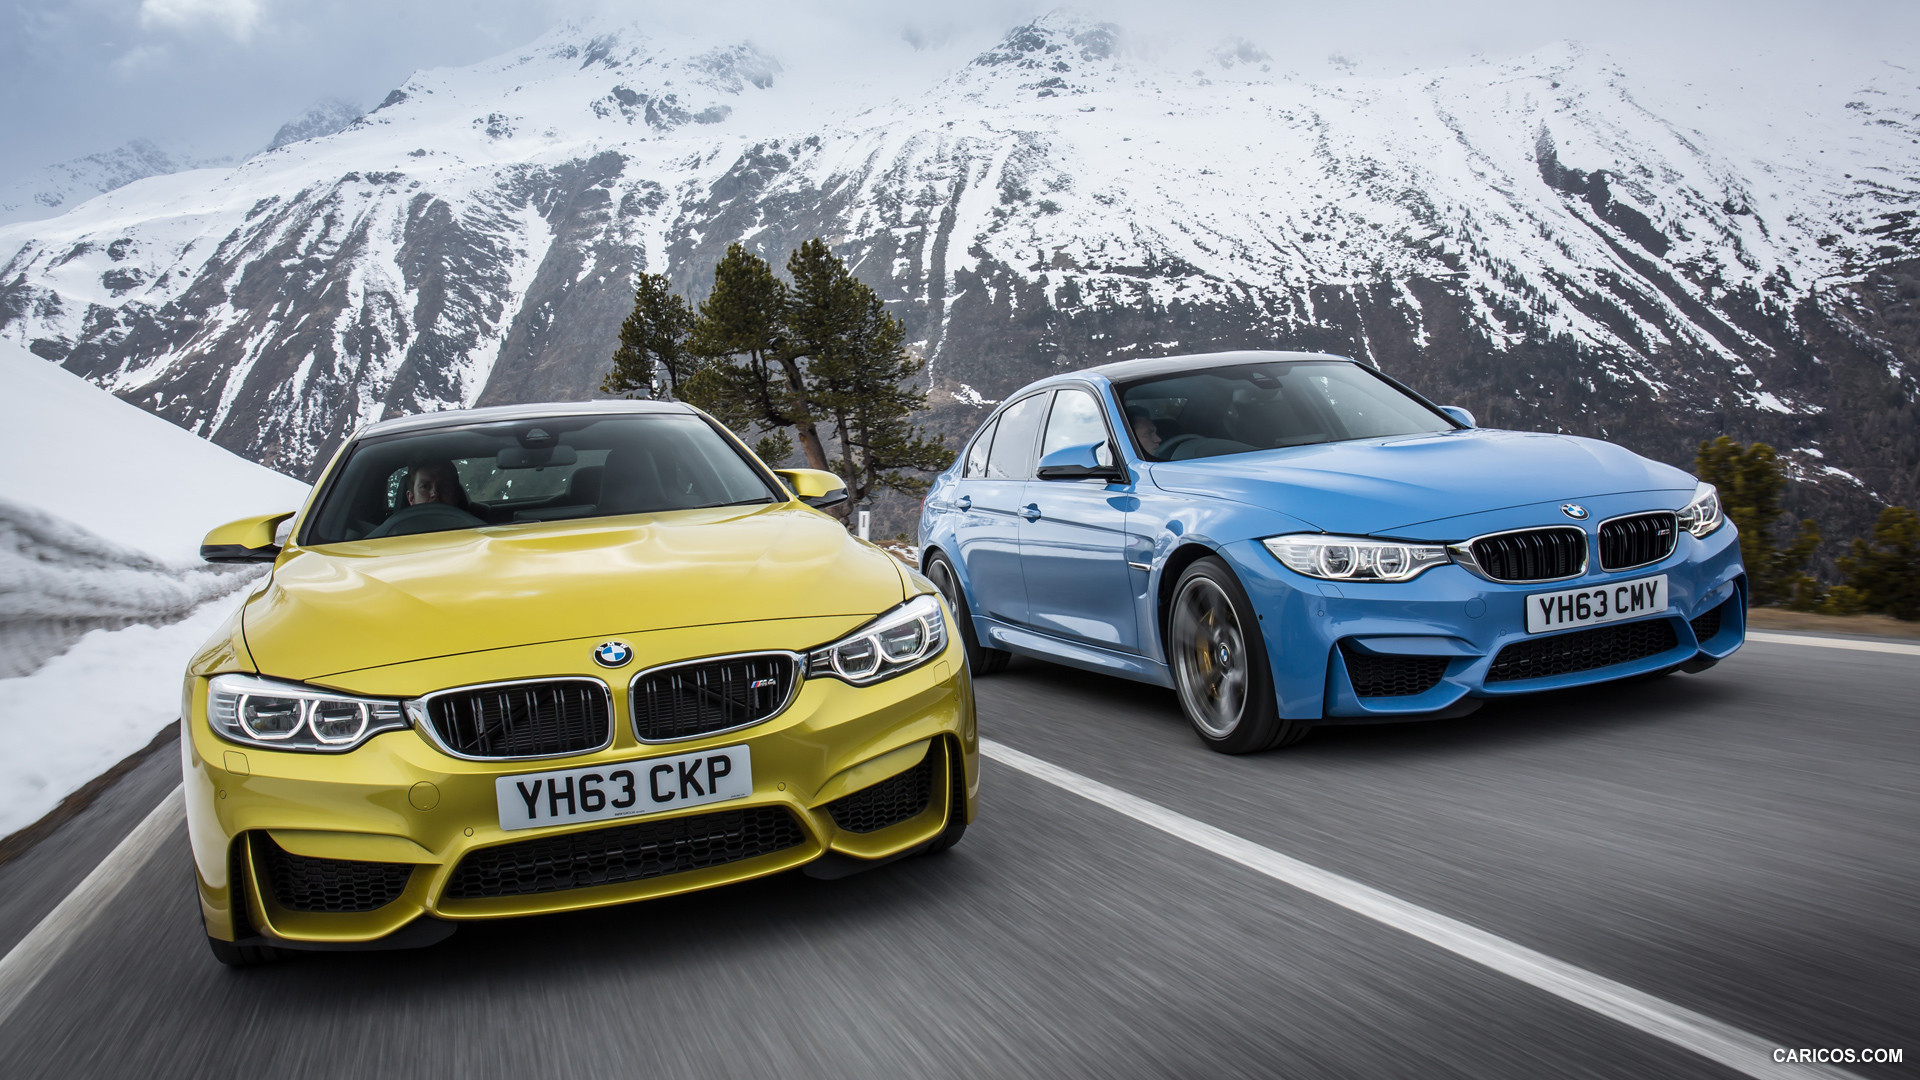 Bmw M3 And Bmw M4 Voted Auto Bild Sports Cars Of The Year